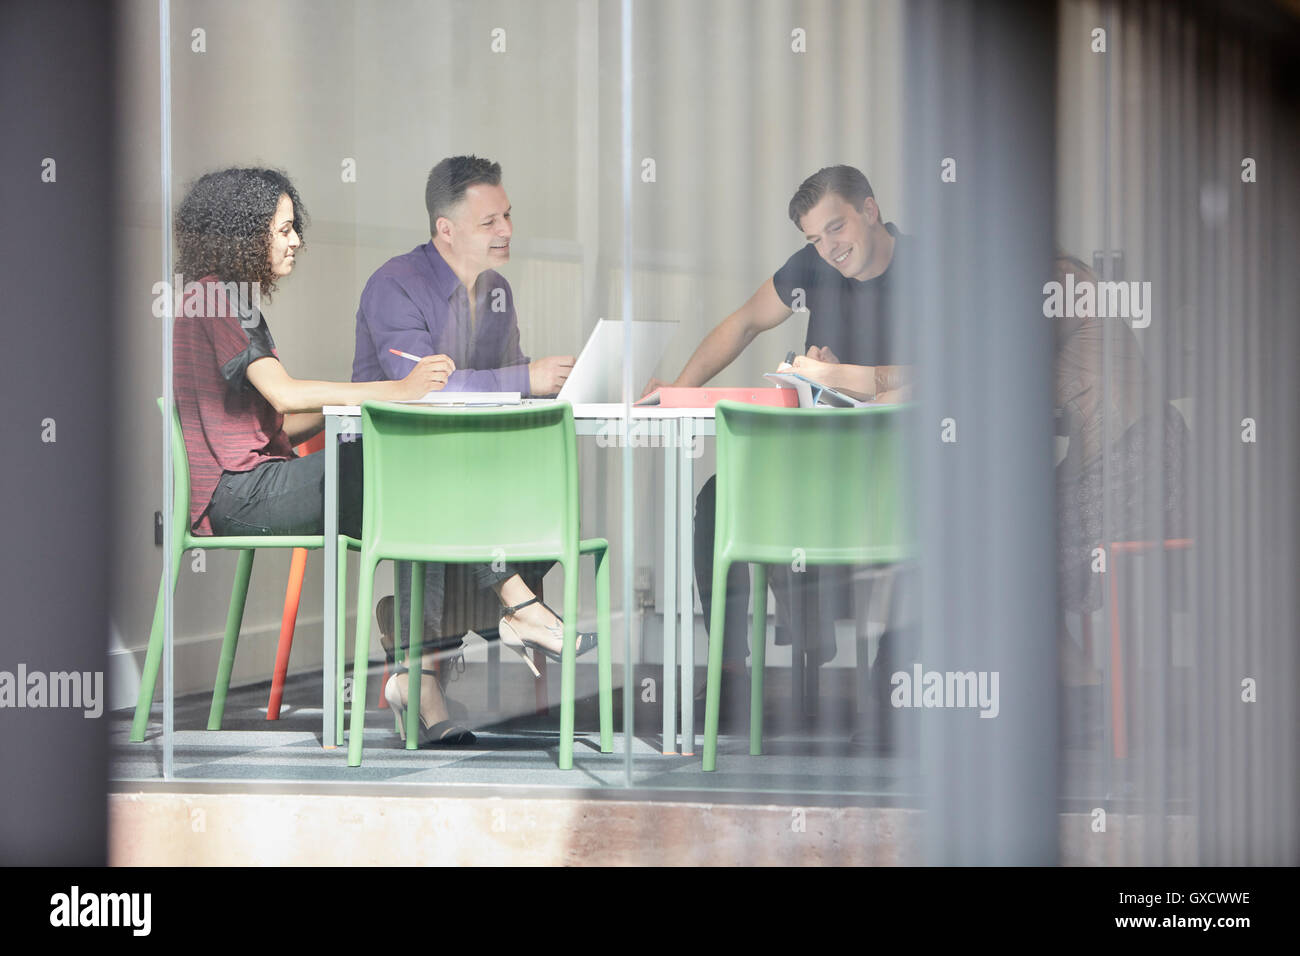 Design team brainstorming at design studio boardroom table - Stock Image